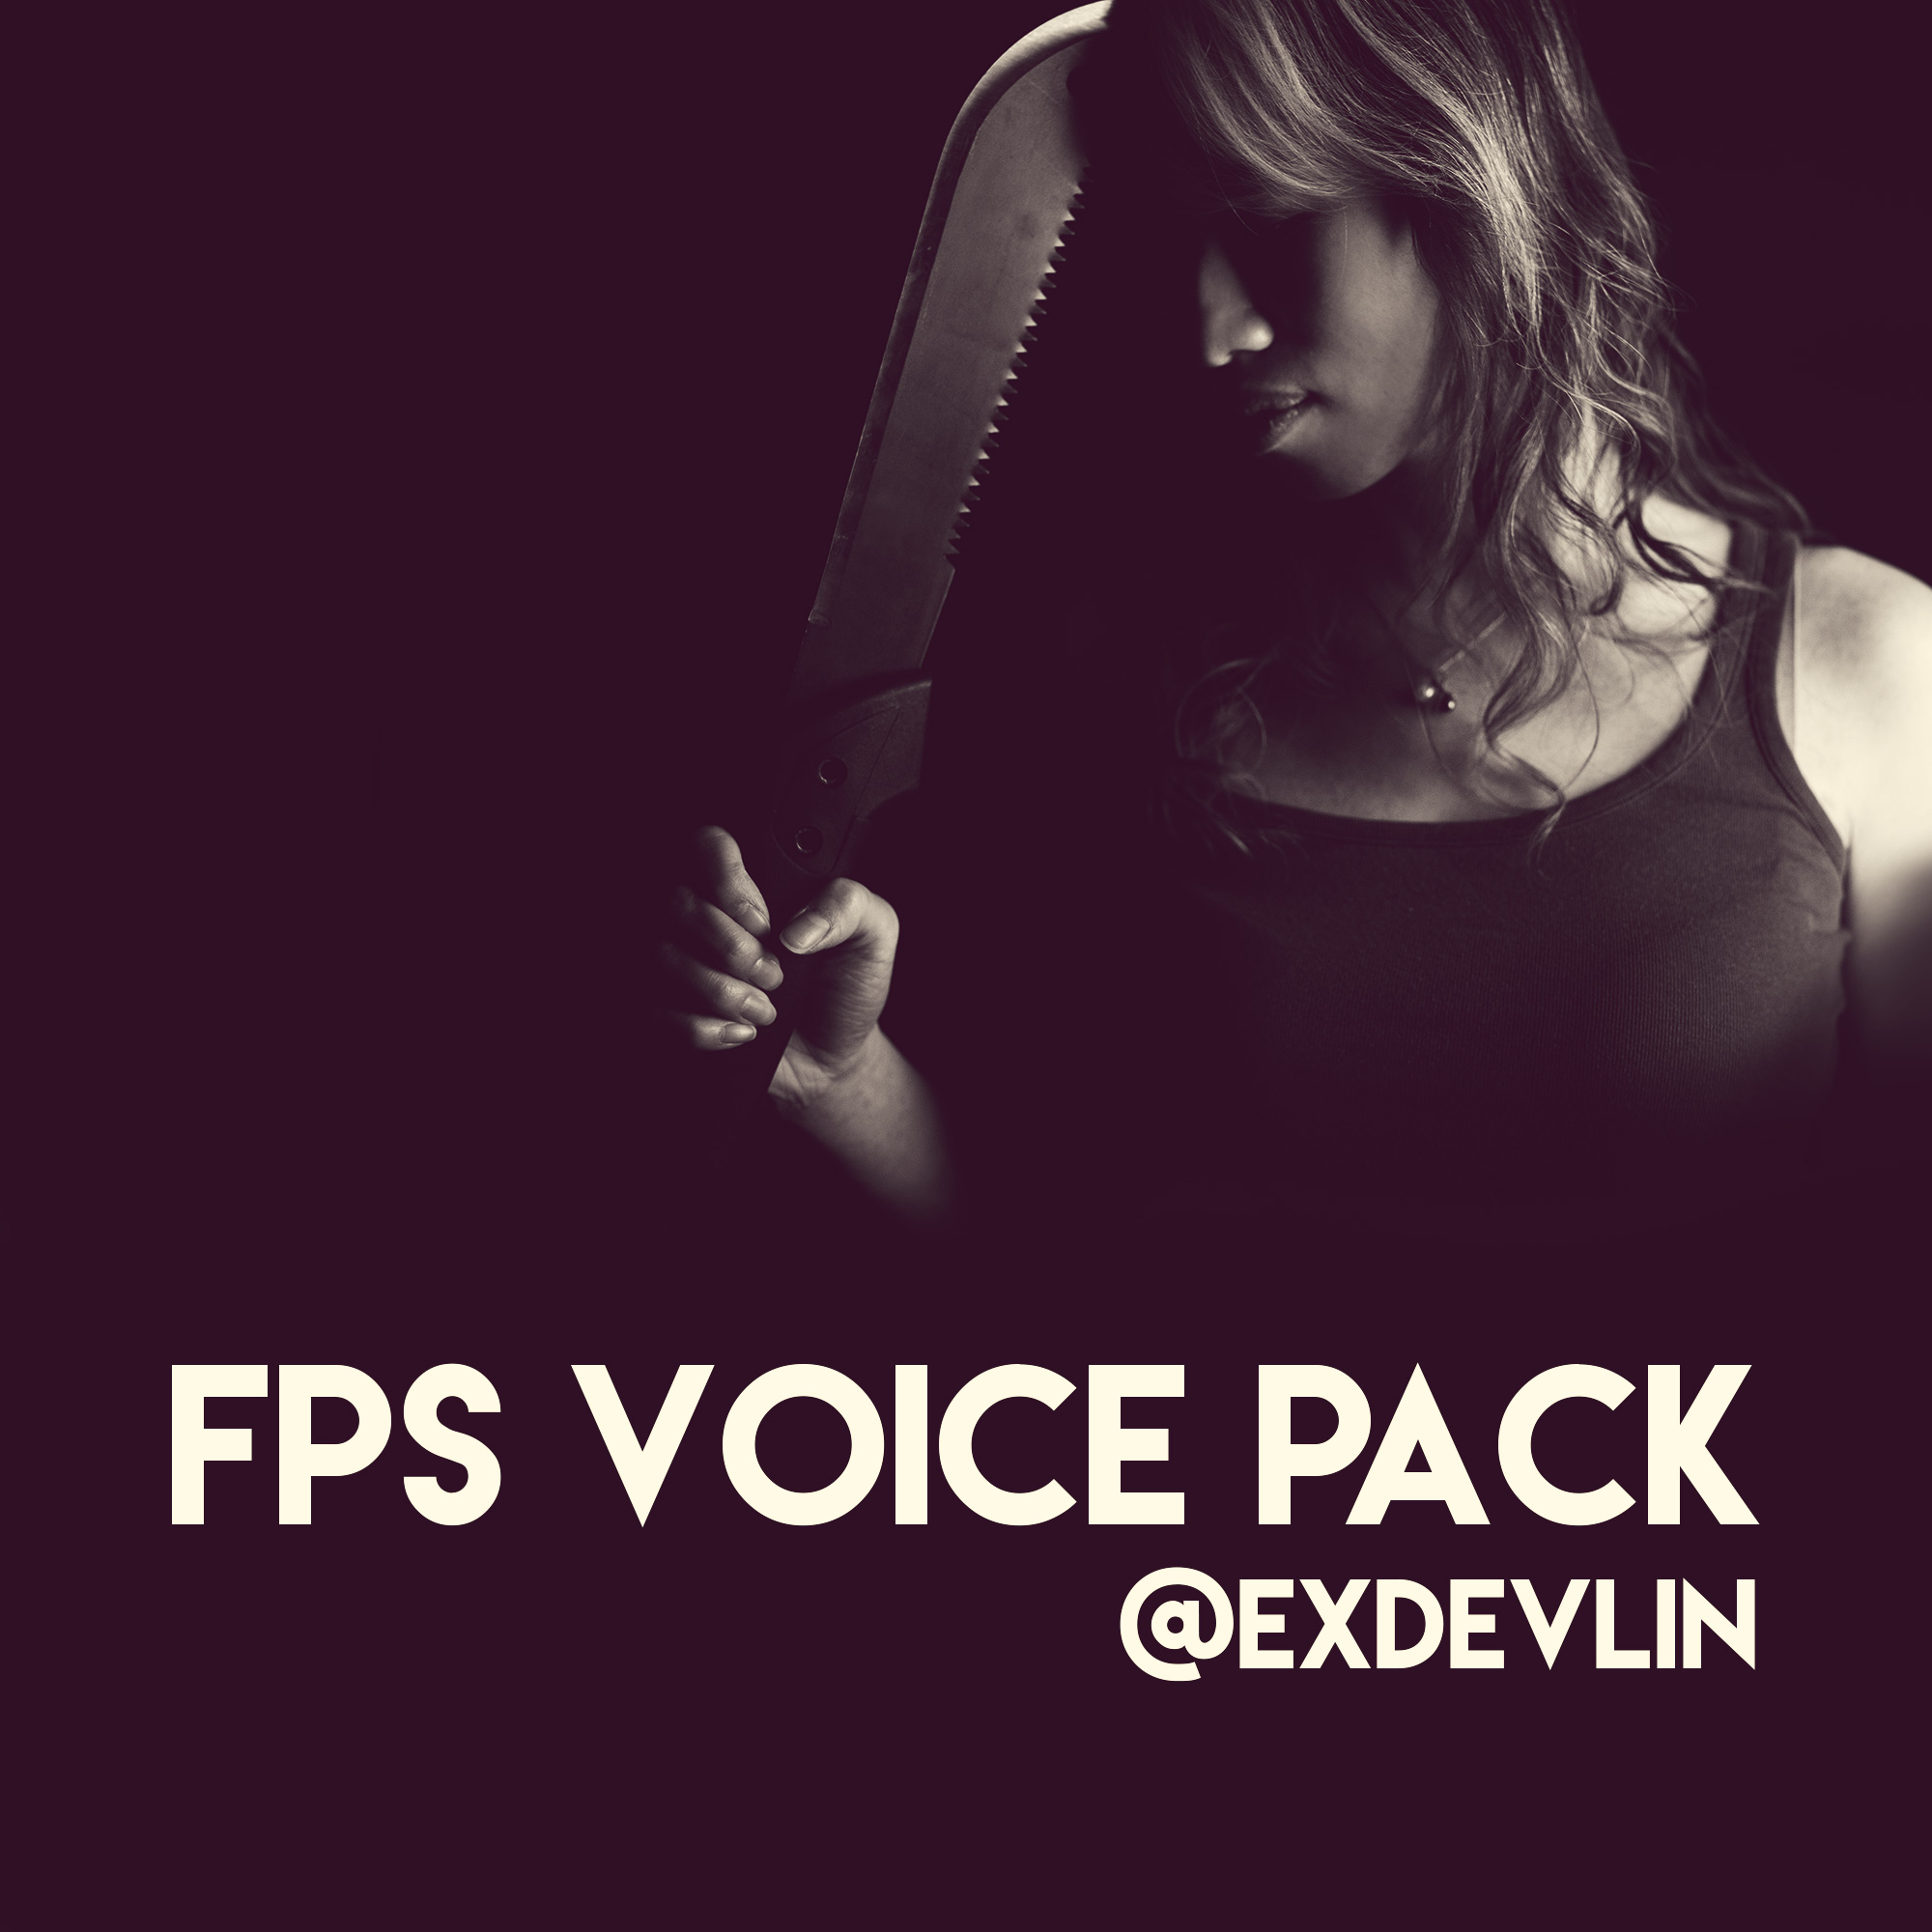 FPS Voice Pack